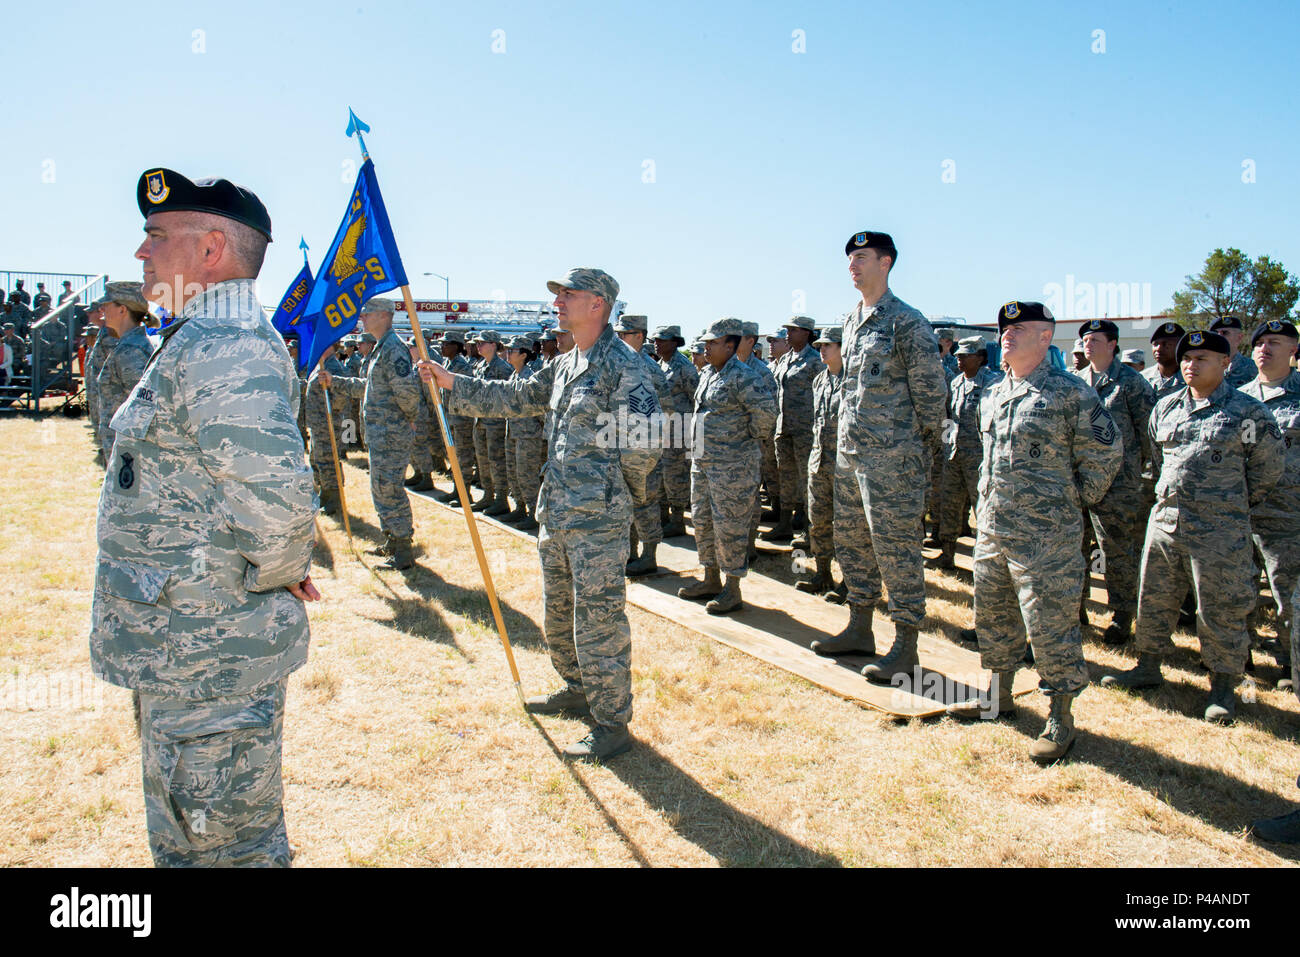 Members of the 60th Mission Support Group, Travis Air Force Base, Calif., stand in formation during Change of Command Ceremony.  U.S. Air Force Col. George Dietrich relinquished command to U.S. Air Force Col. Lance Clark, June 24, 2016. (U.S. Air Force photo by Louis Briscese/Released) - Stock Image